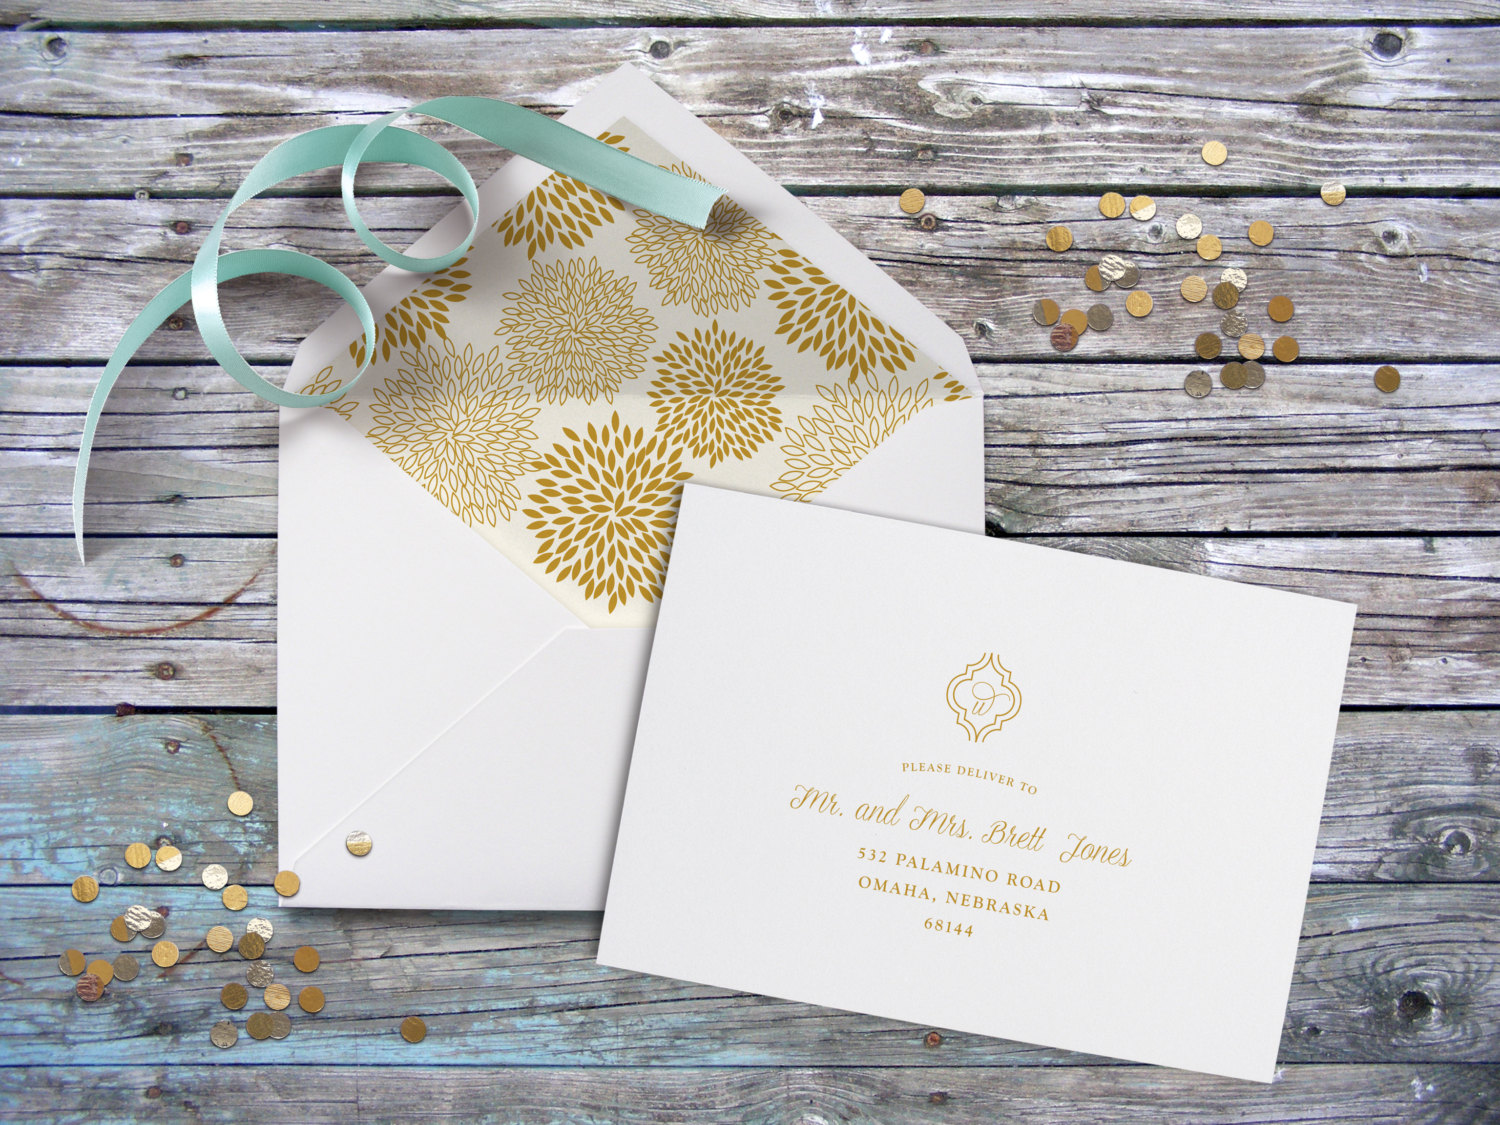 Calligraphy Guest Addressed Envelope, Digital Envelope Addressing ...